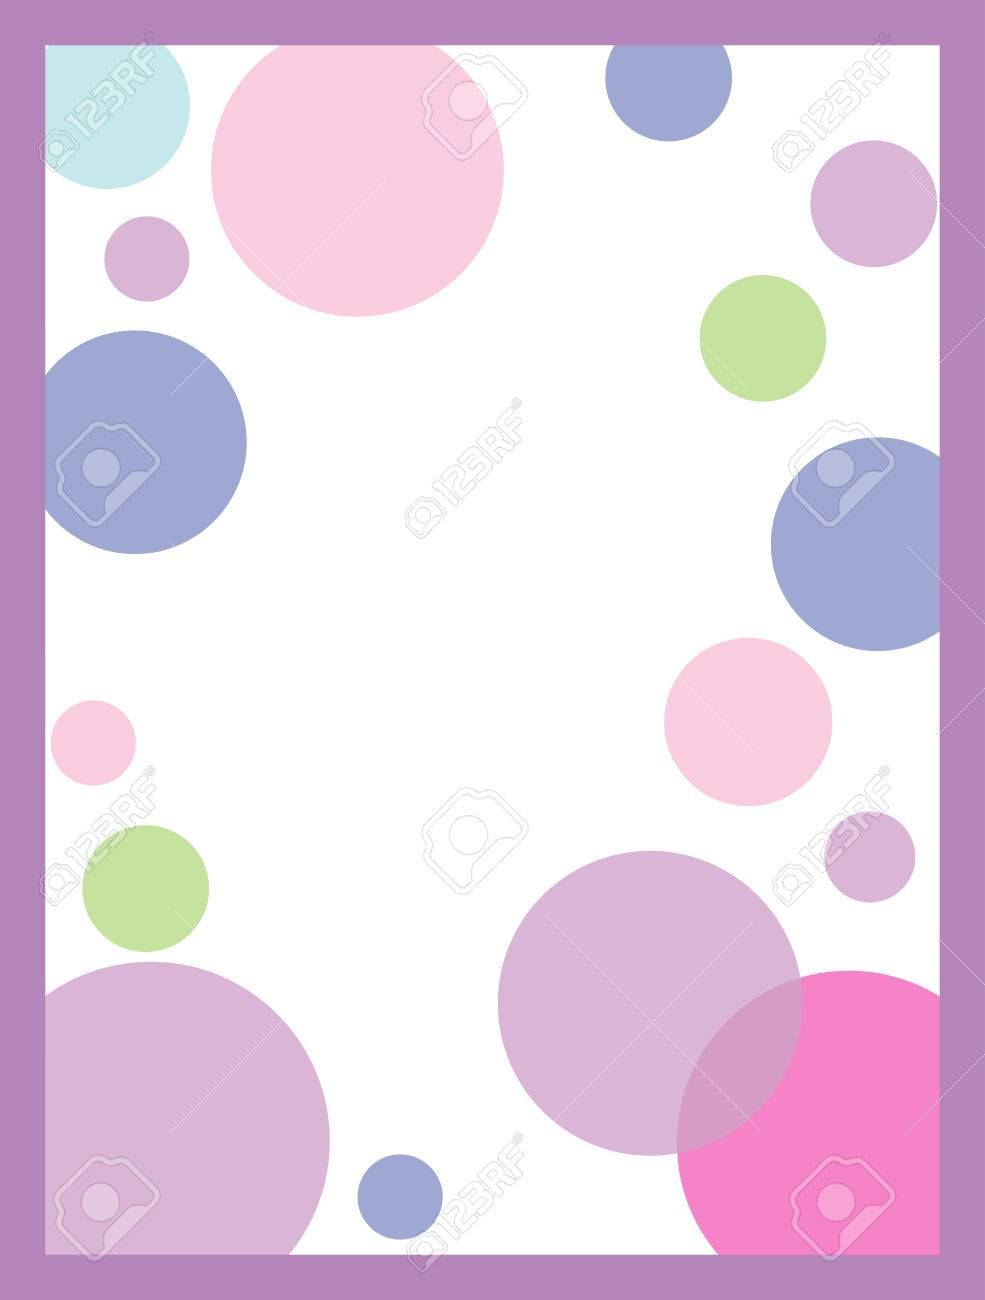 pink polka dot invitation background royalty free cliparts vectors